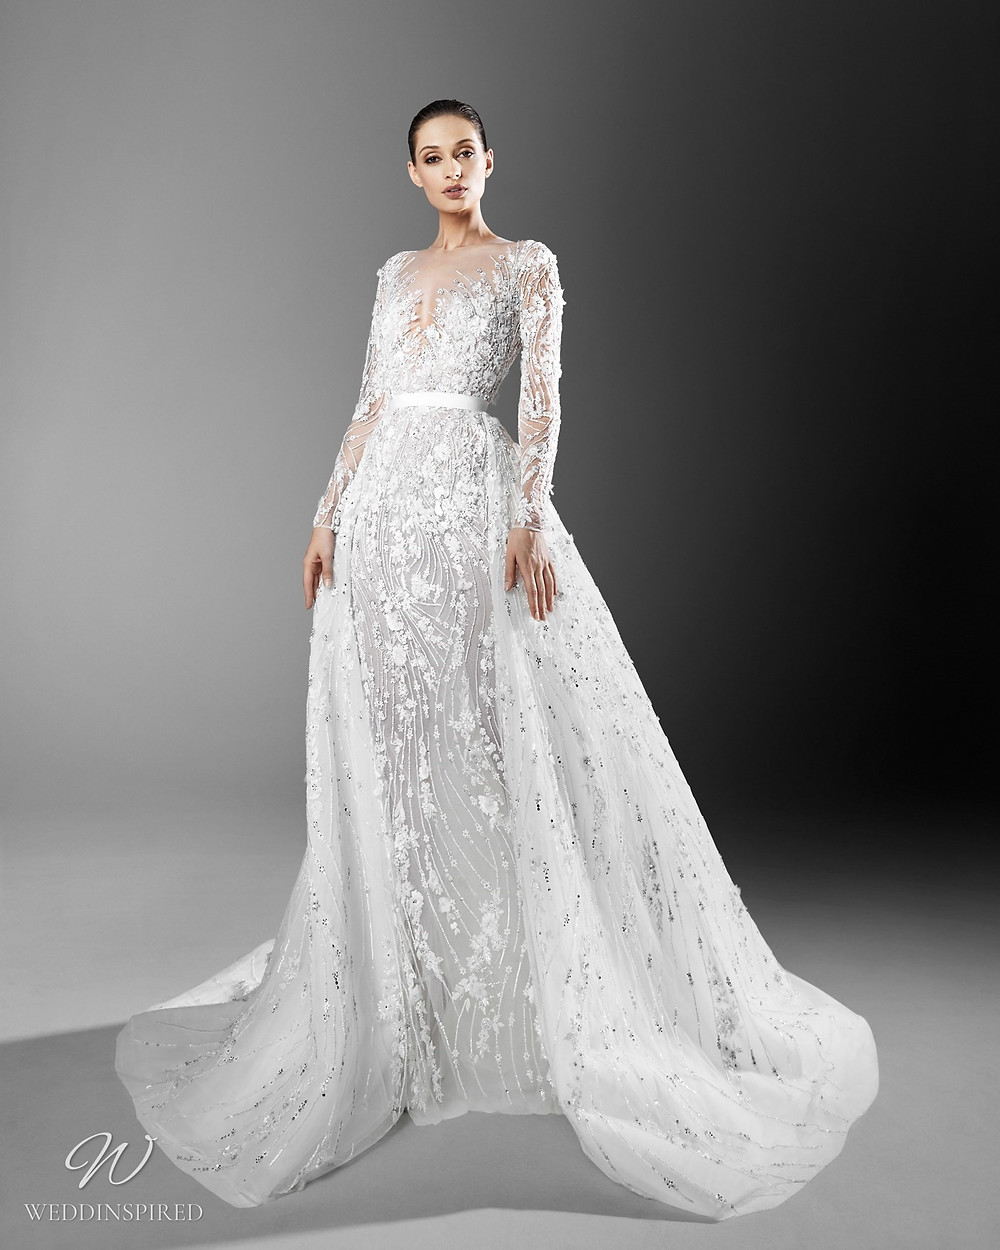 A Zuhair Murad crystal embellished mermaid wedding dress with a detachable skirt